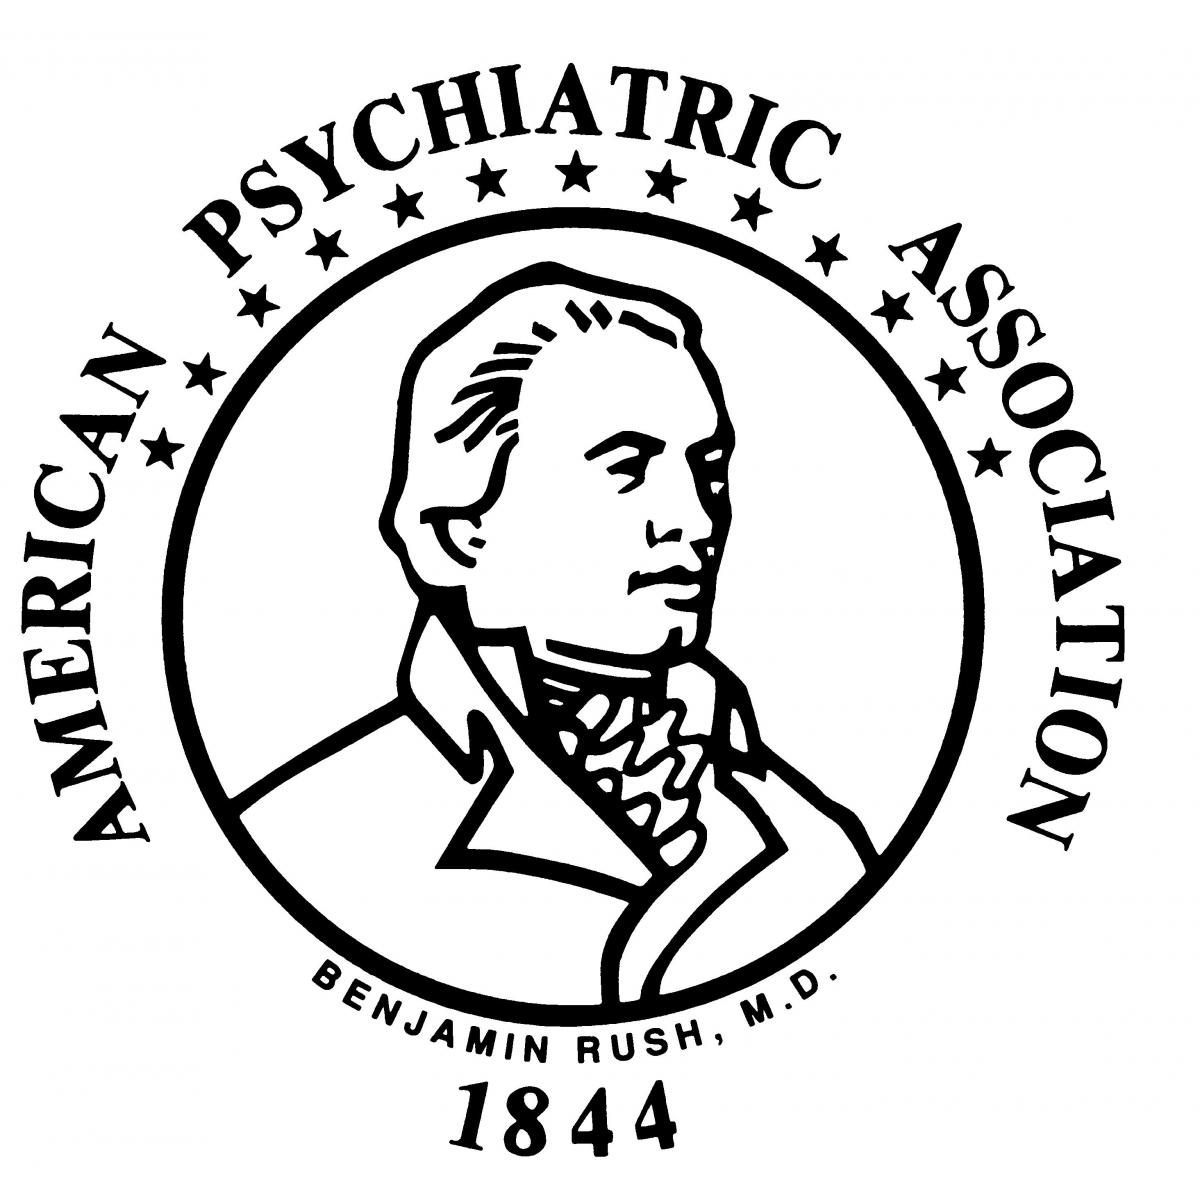 Binder Is President-Elect of the American Psychiatric